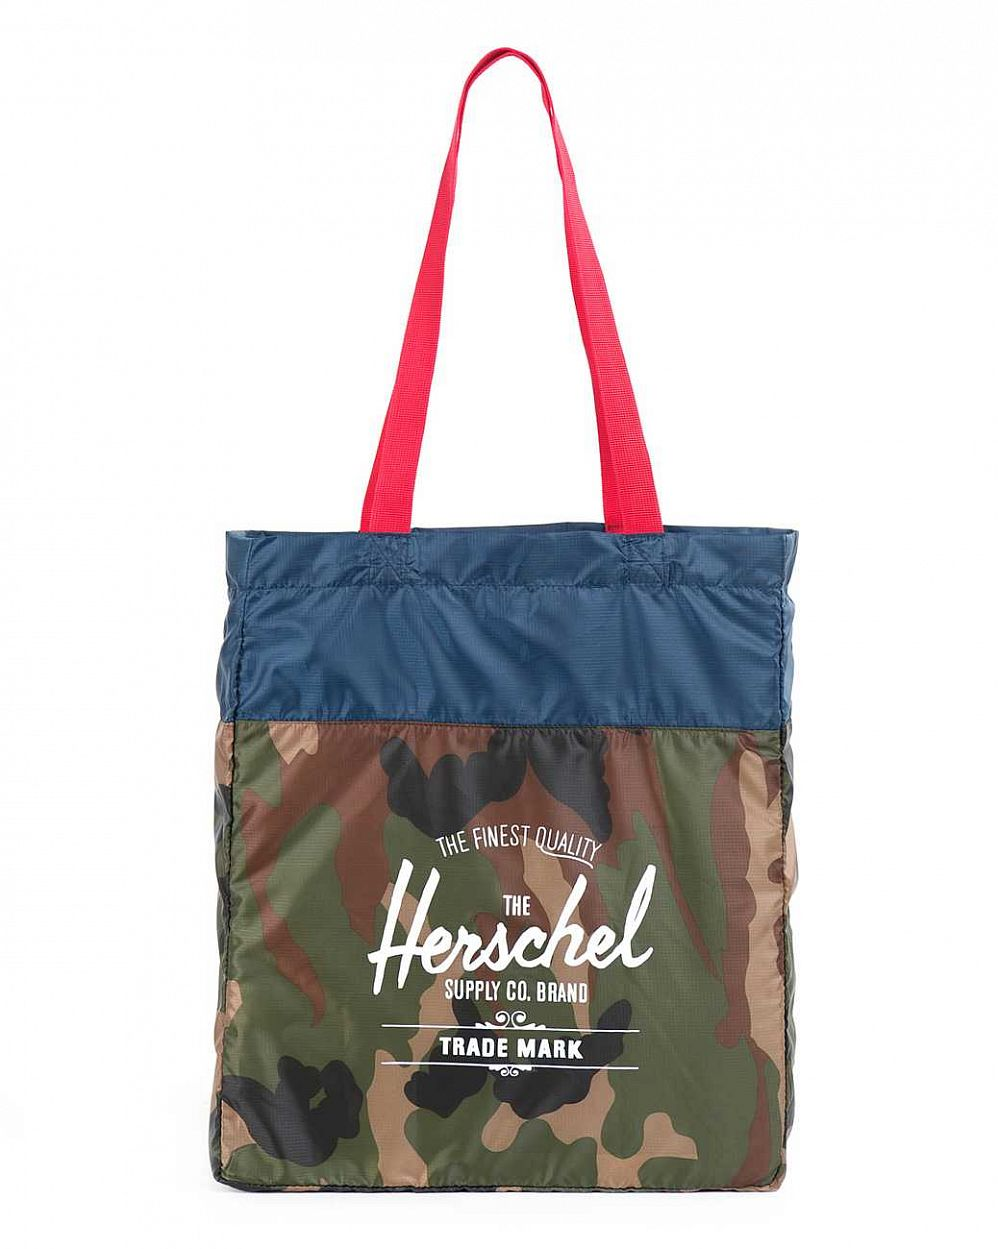 Сумка Herschel Packable Travel Tote Bag Woodland Camo Navy Red отзывы